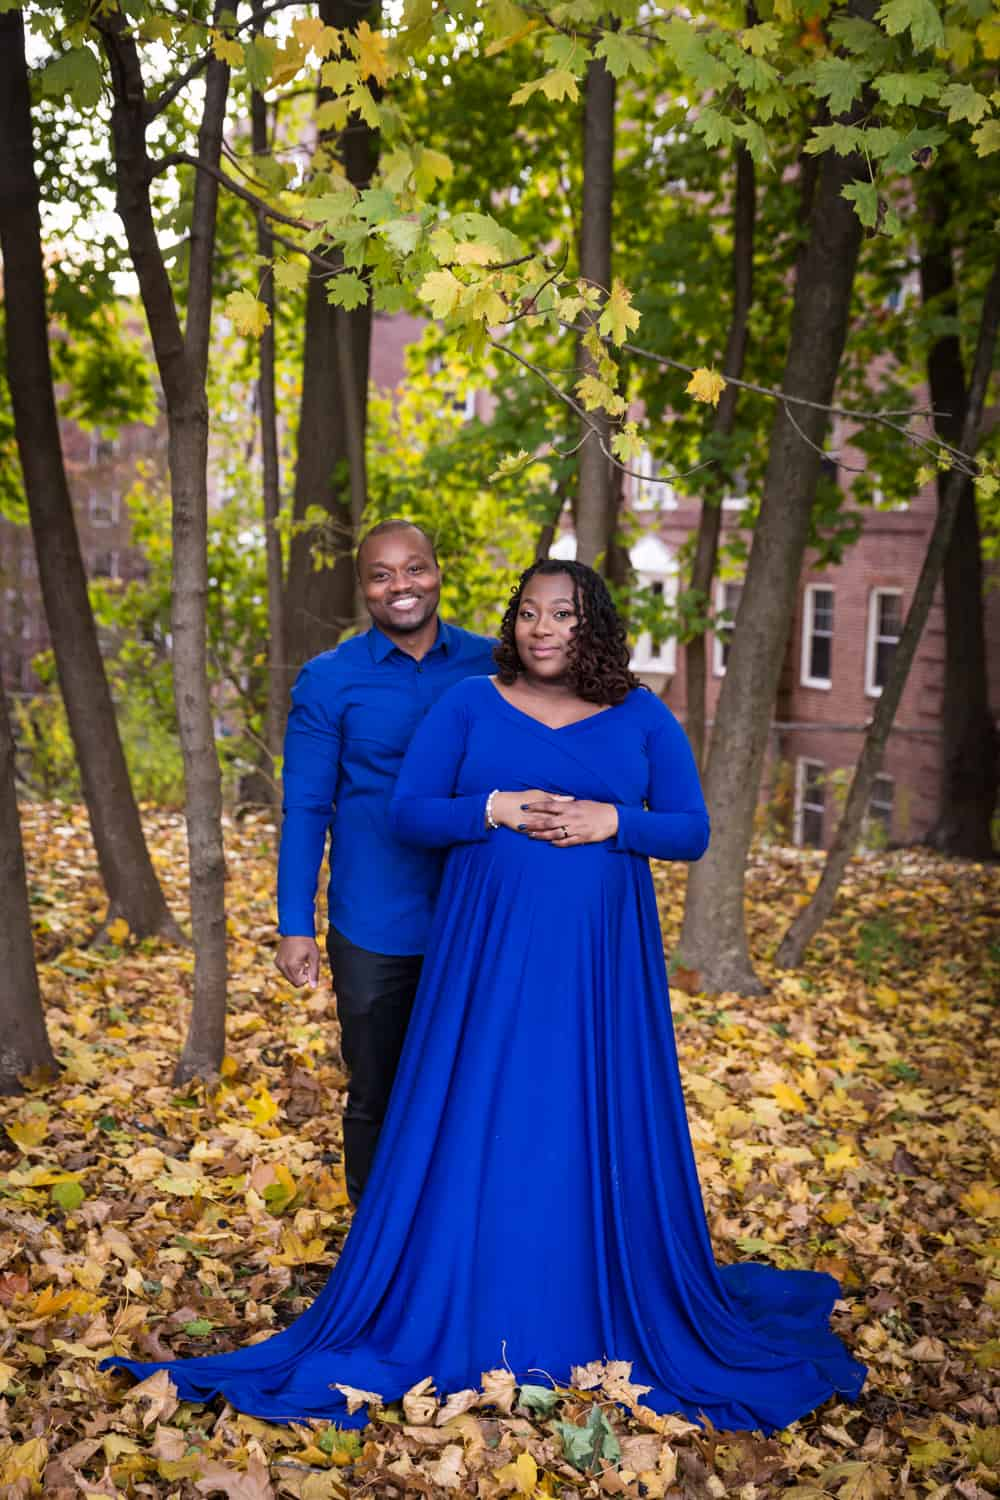 African American expecting couple for an article on maternity photo shoot ideas